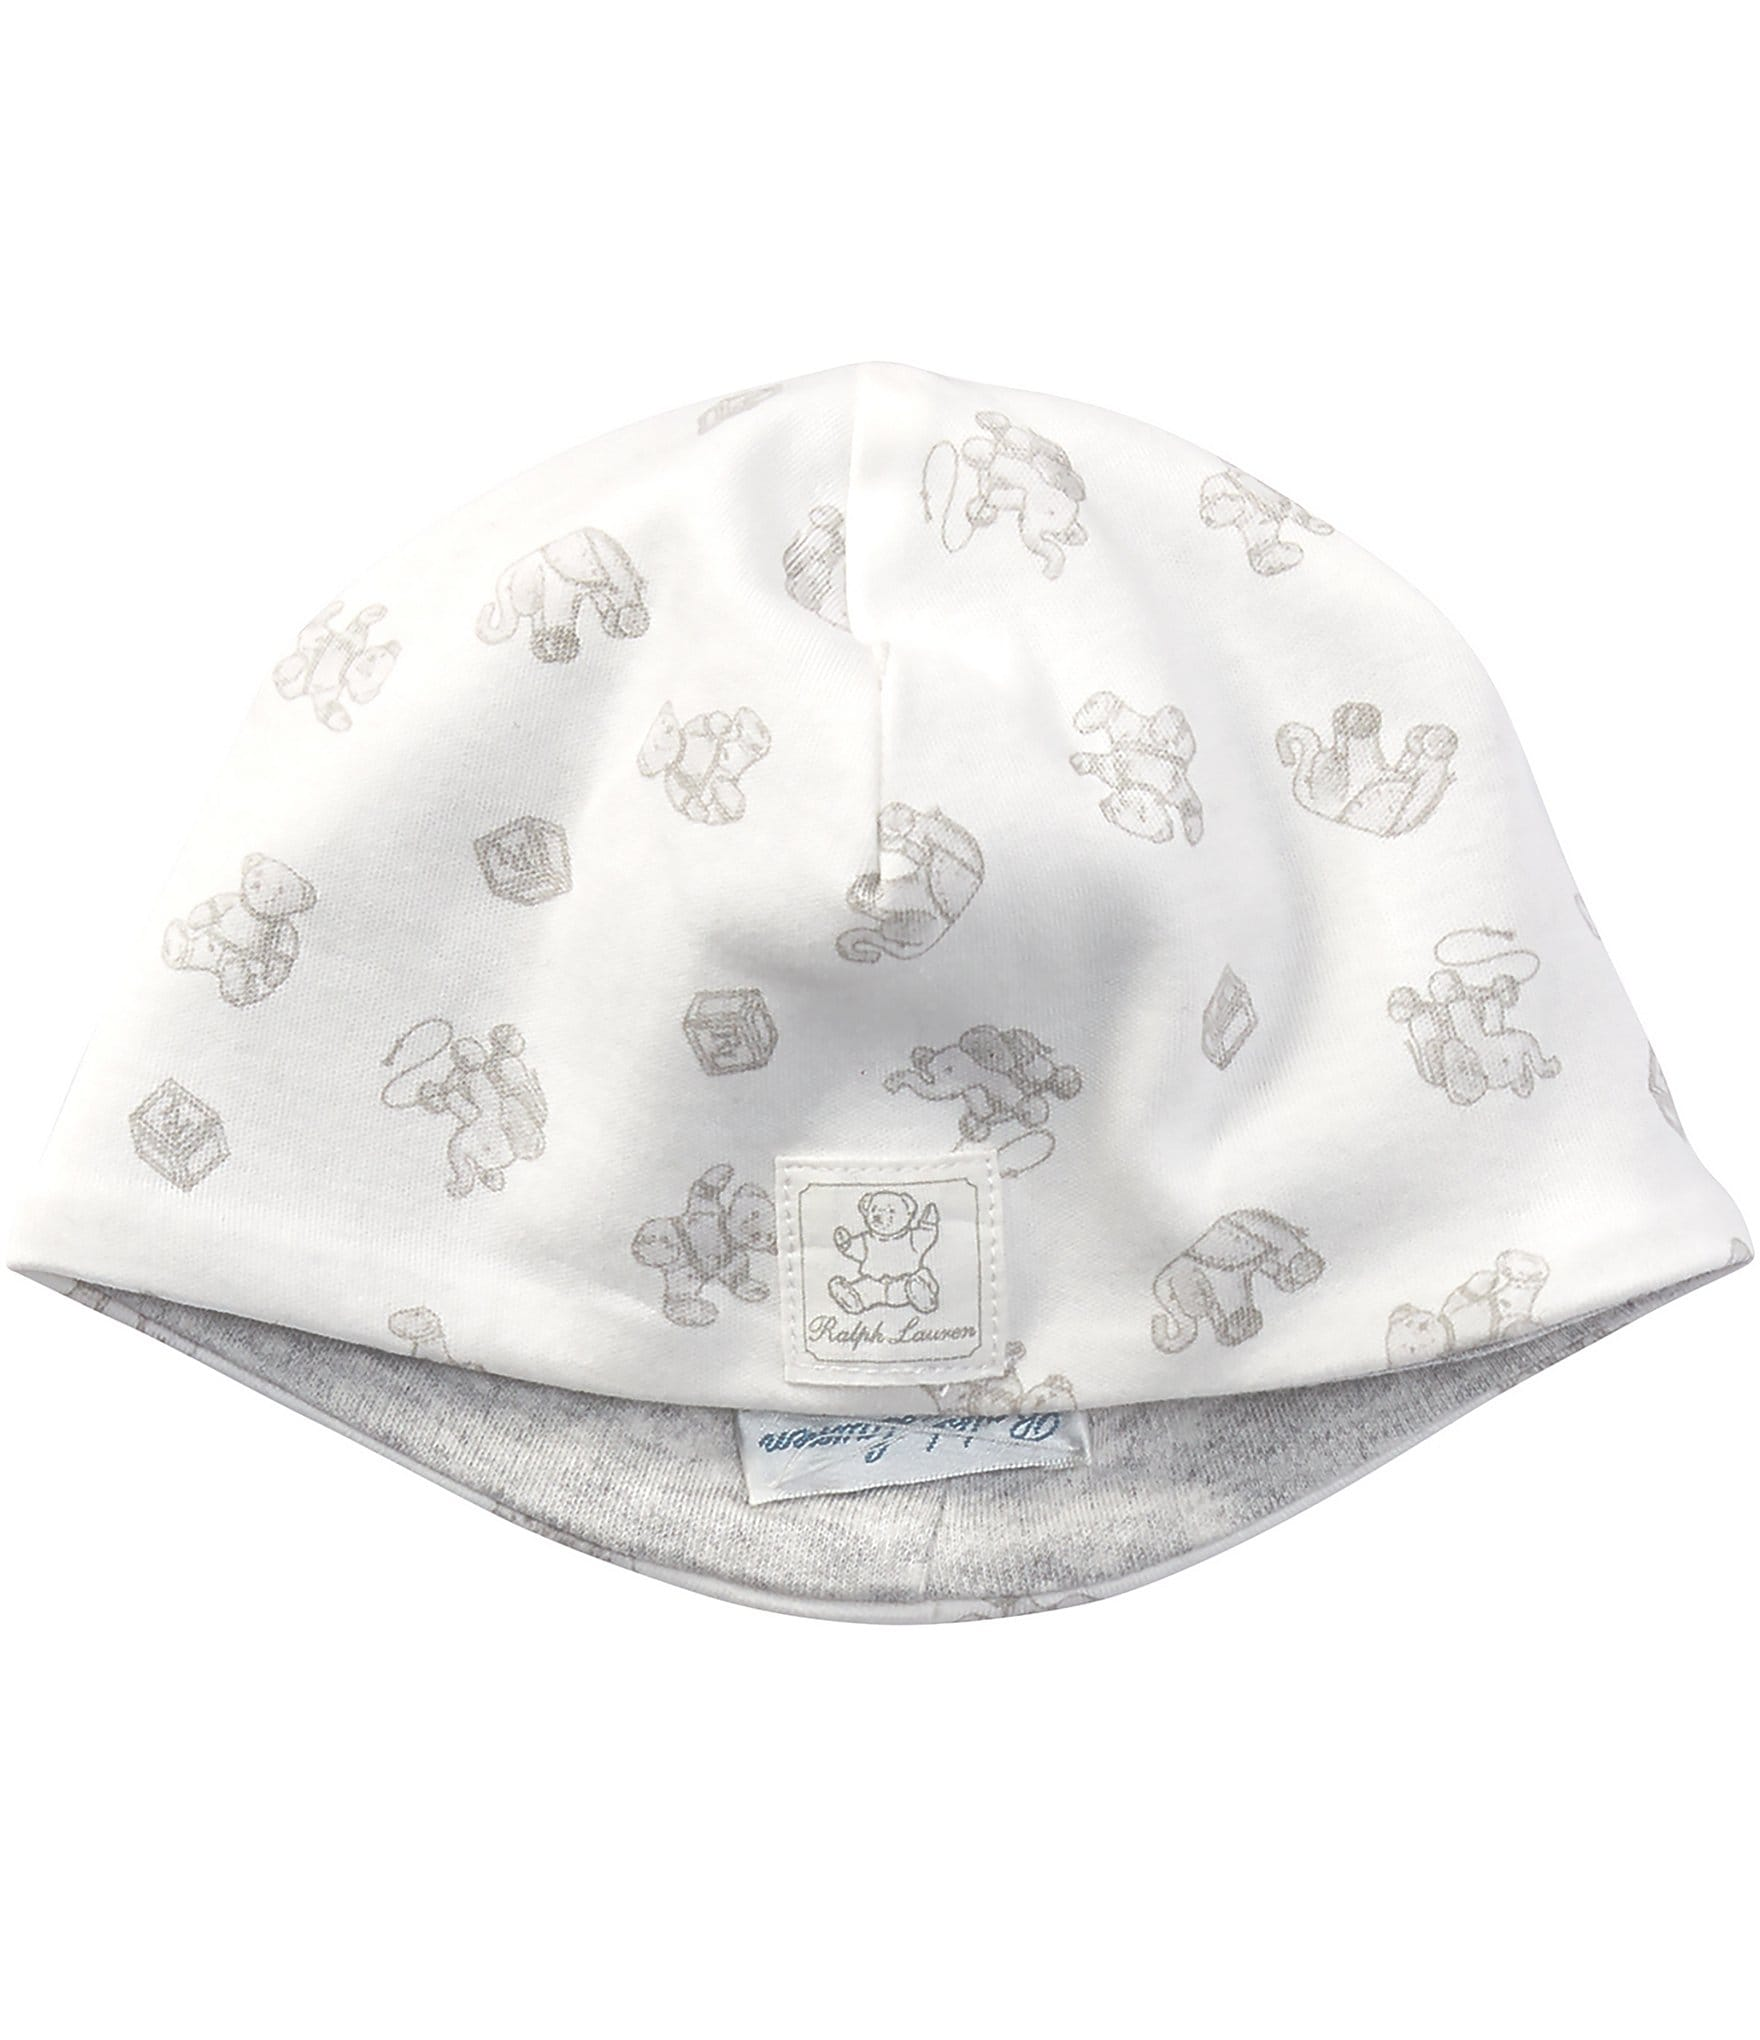 719c30e6c0ebe Ralph Lauren Childrenswear Newborn Baby Toy Print Reversible Beanie Hat